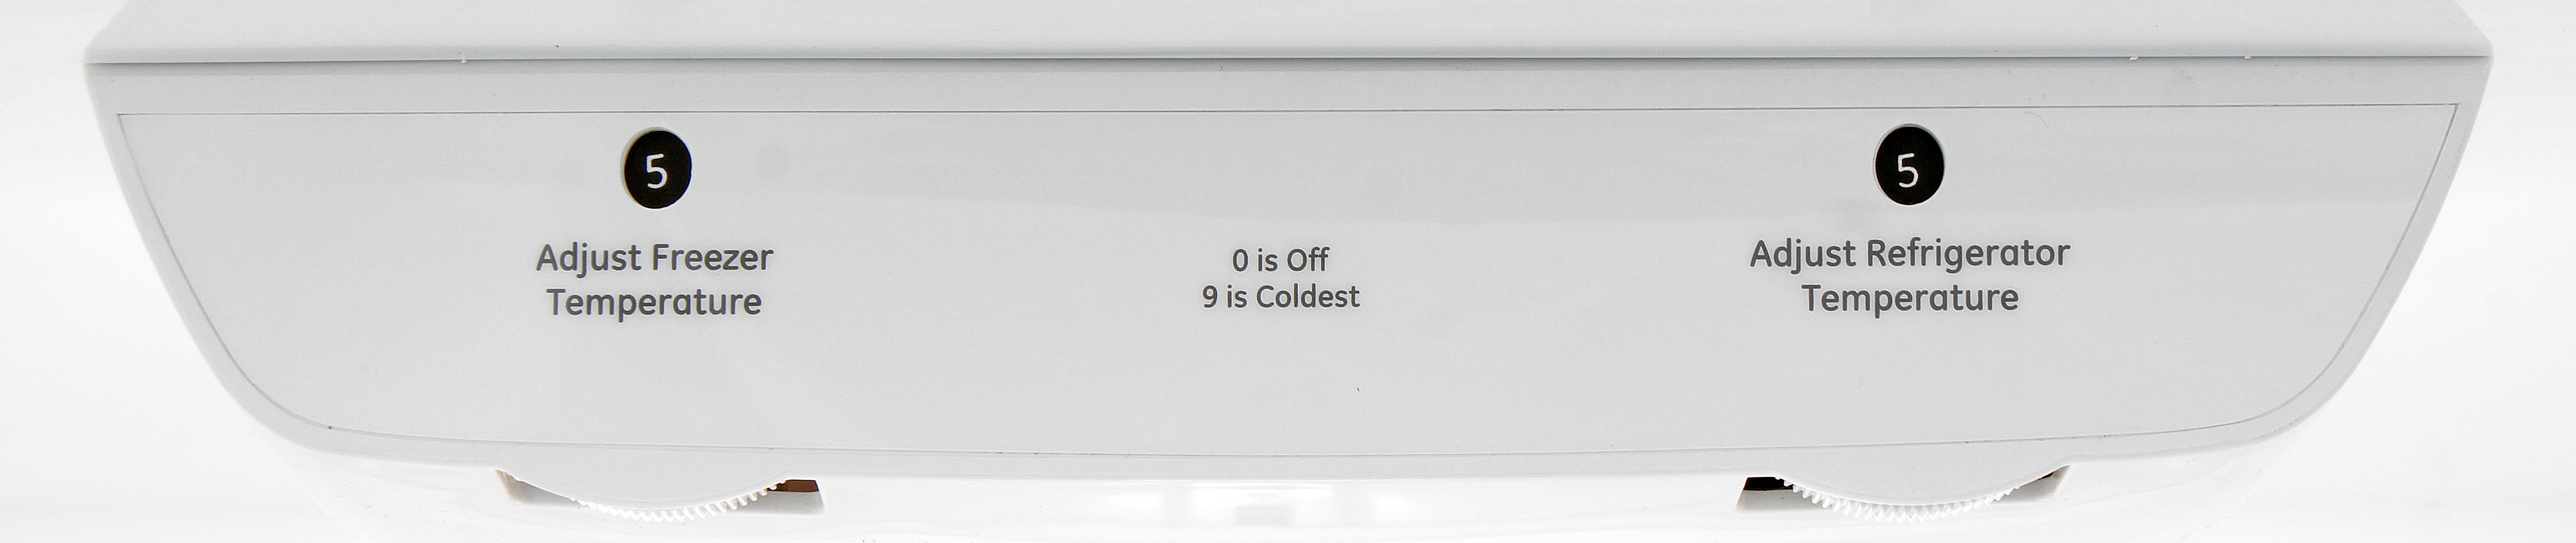 Aside from the thermostat dial controls, there are no adjustable settings or features found in the GE Artistry ABE20EGEBS.